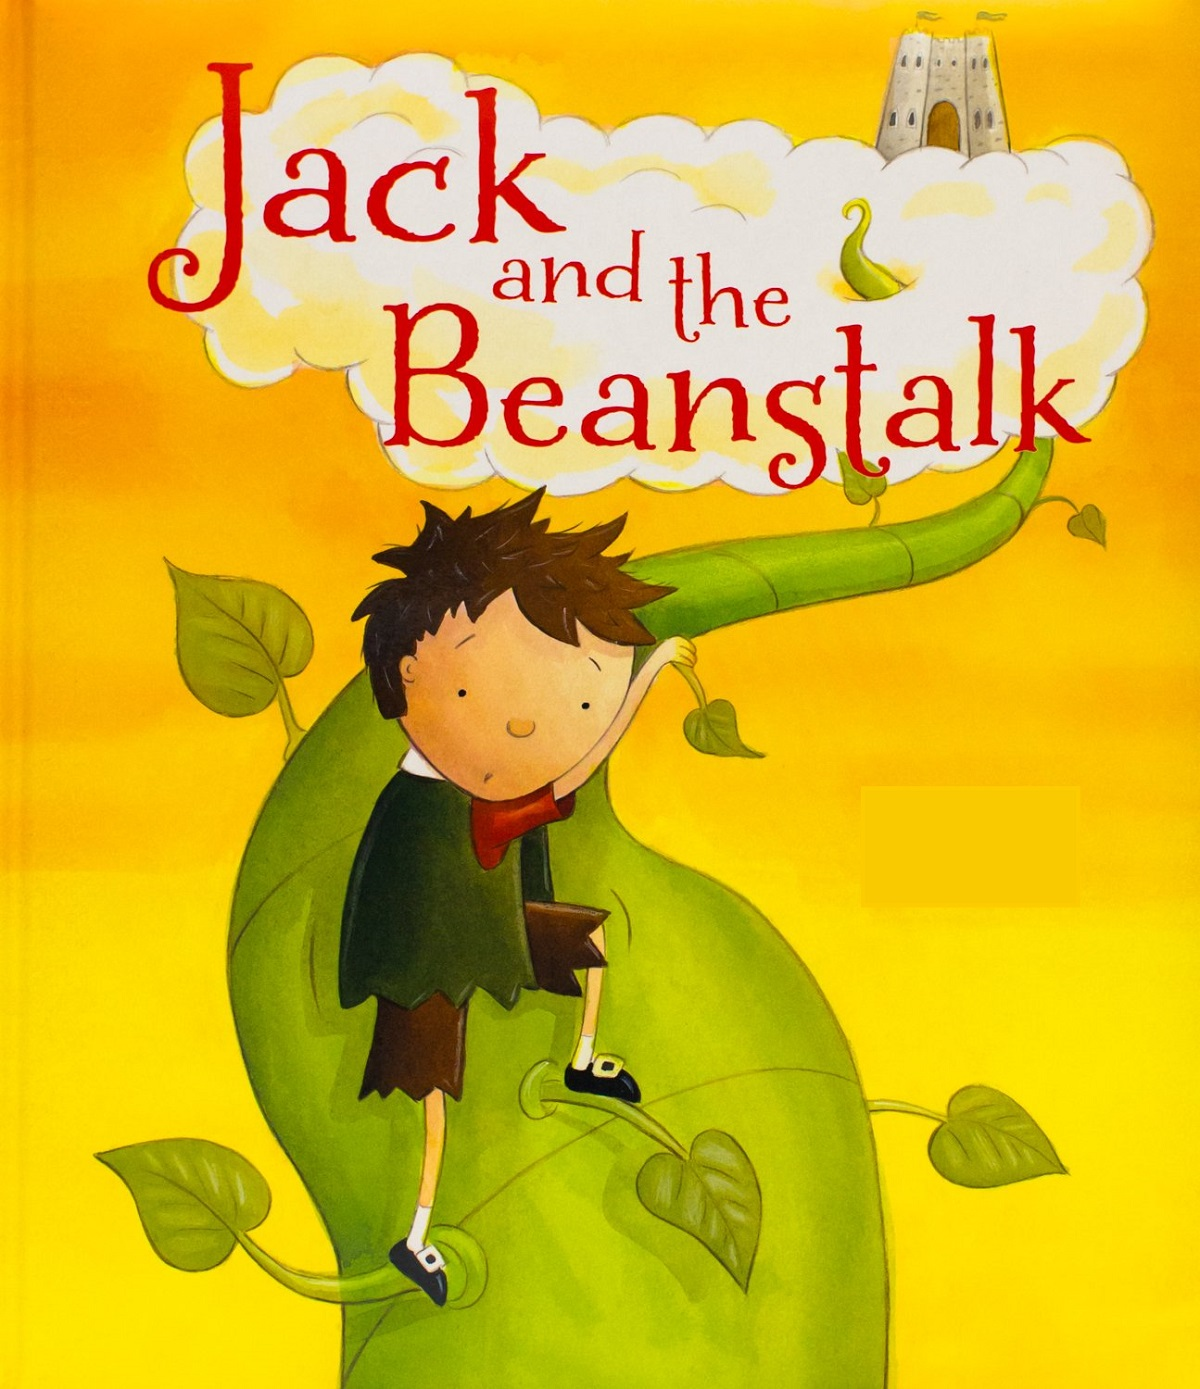 jack and the beanstalk images fairy tale